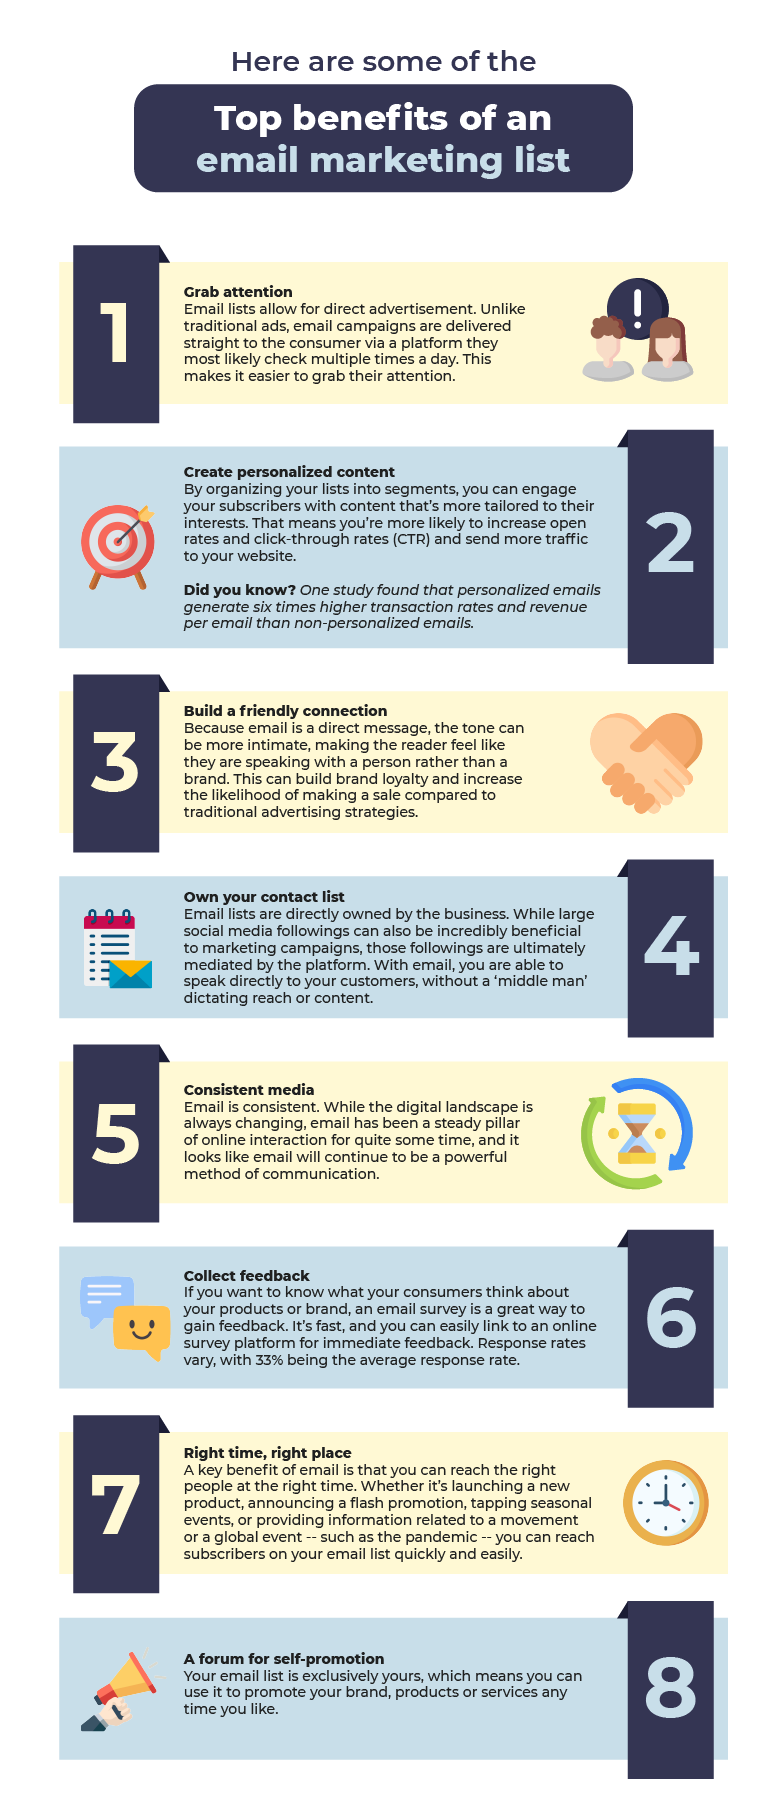 top benefits of an email marketing list infographic